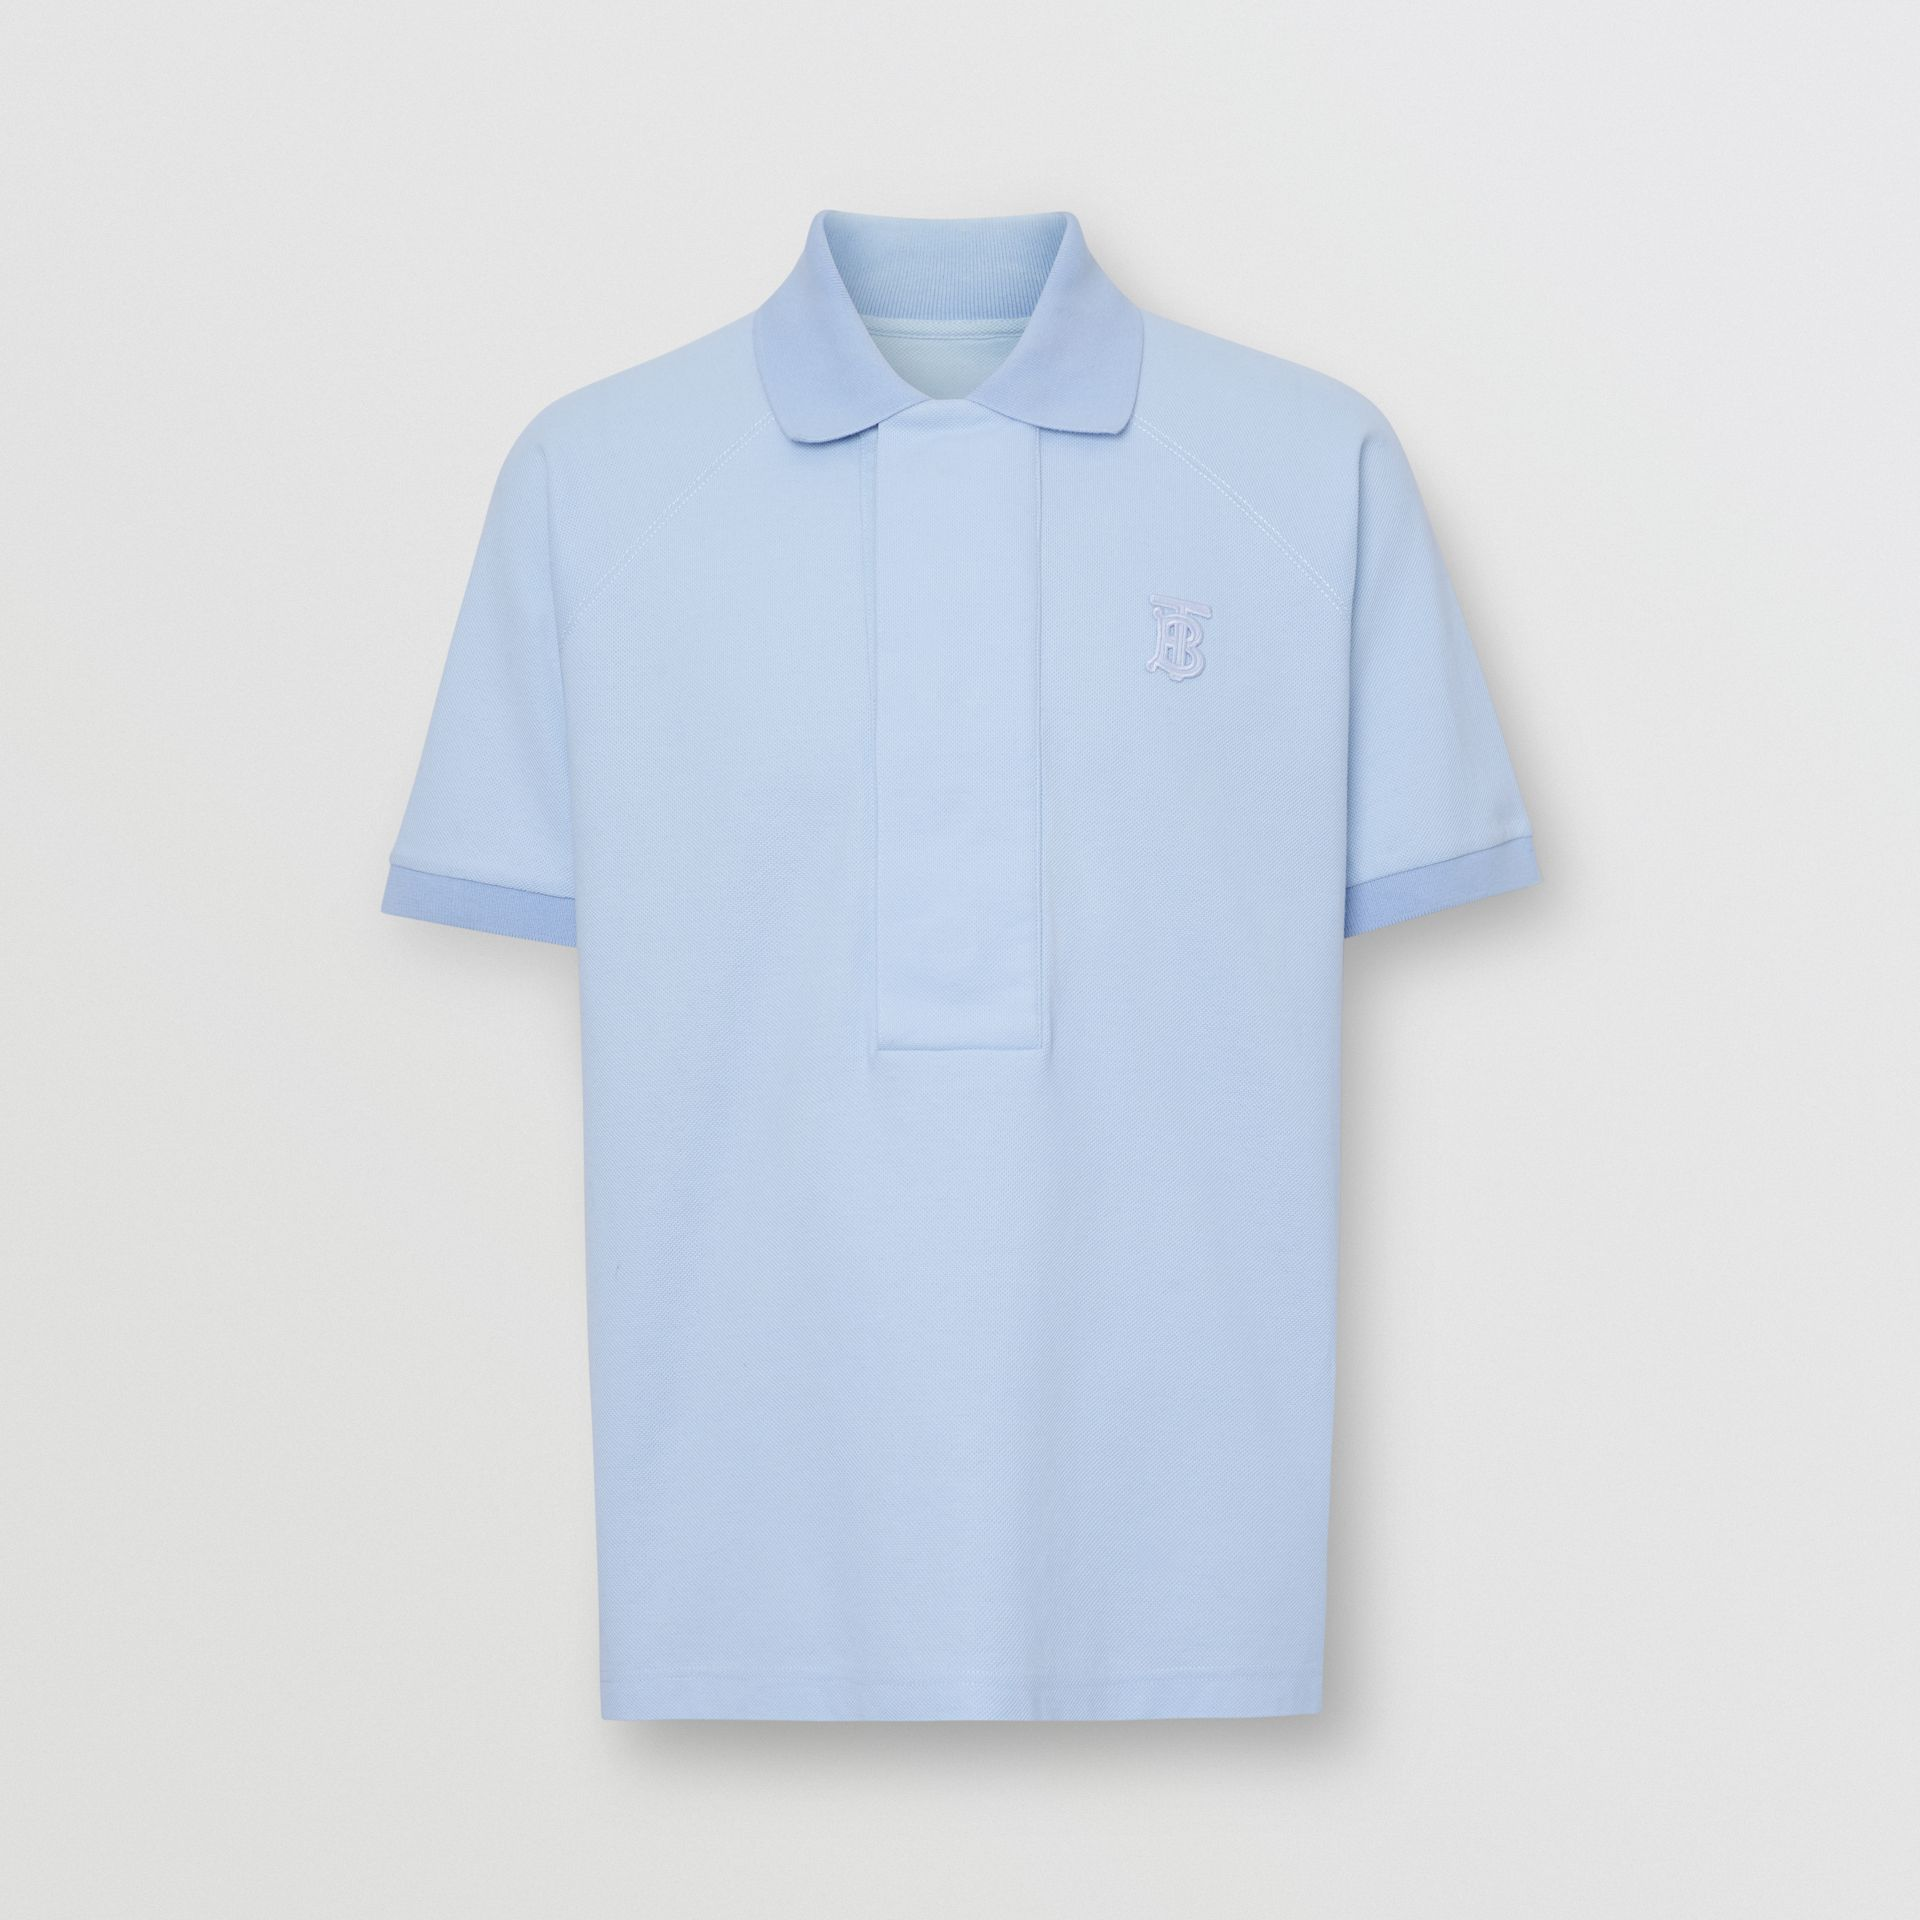 Monogram Motif Cotton Piqué Polo Shirt in Pale Blue | Burberry - gallery image 3